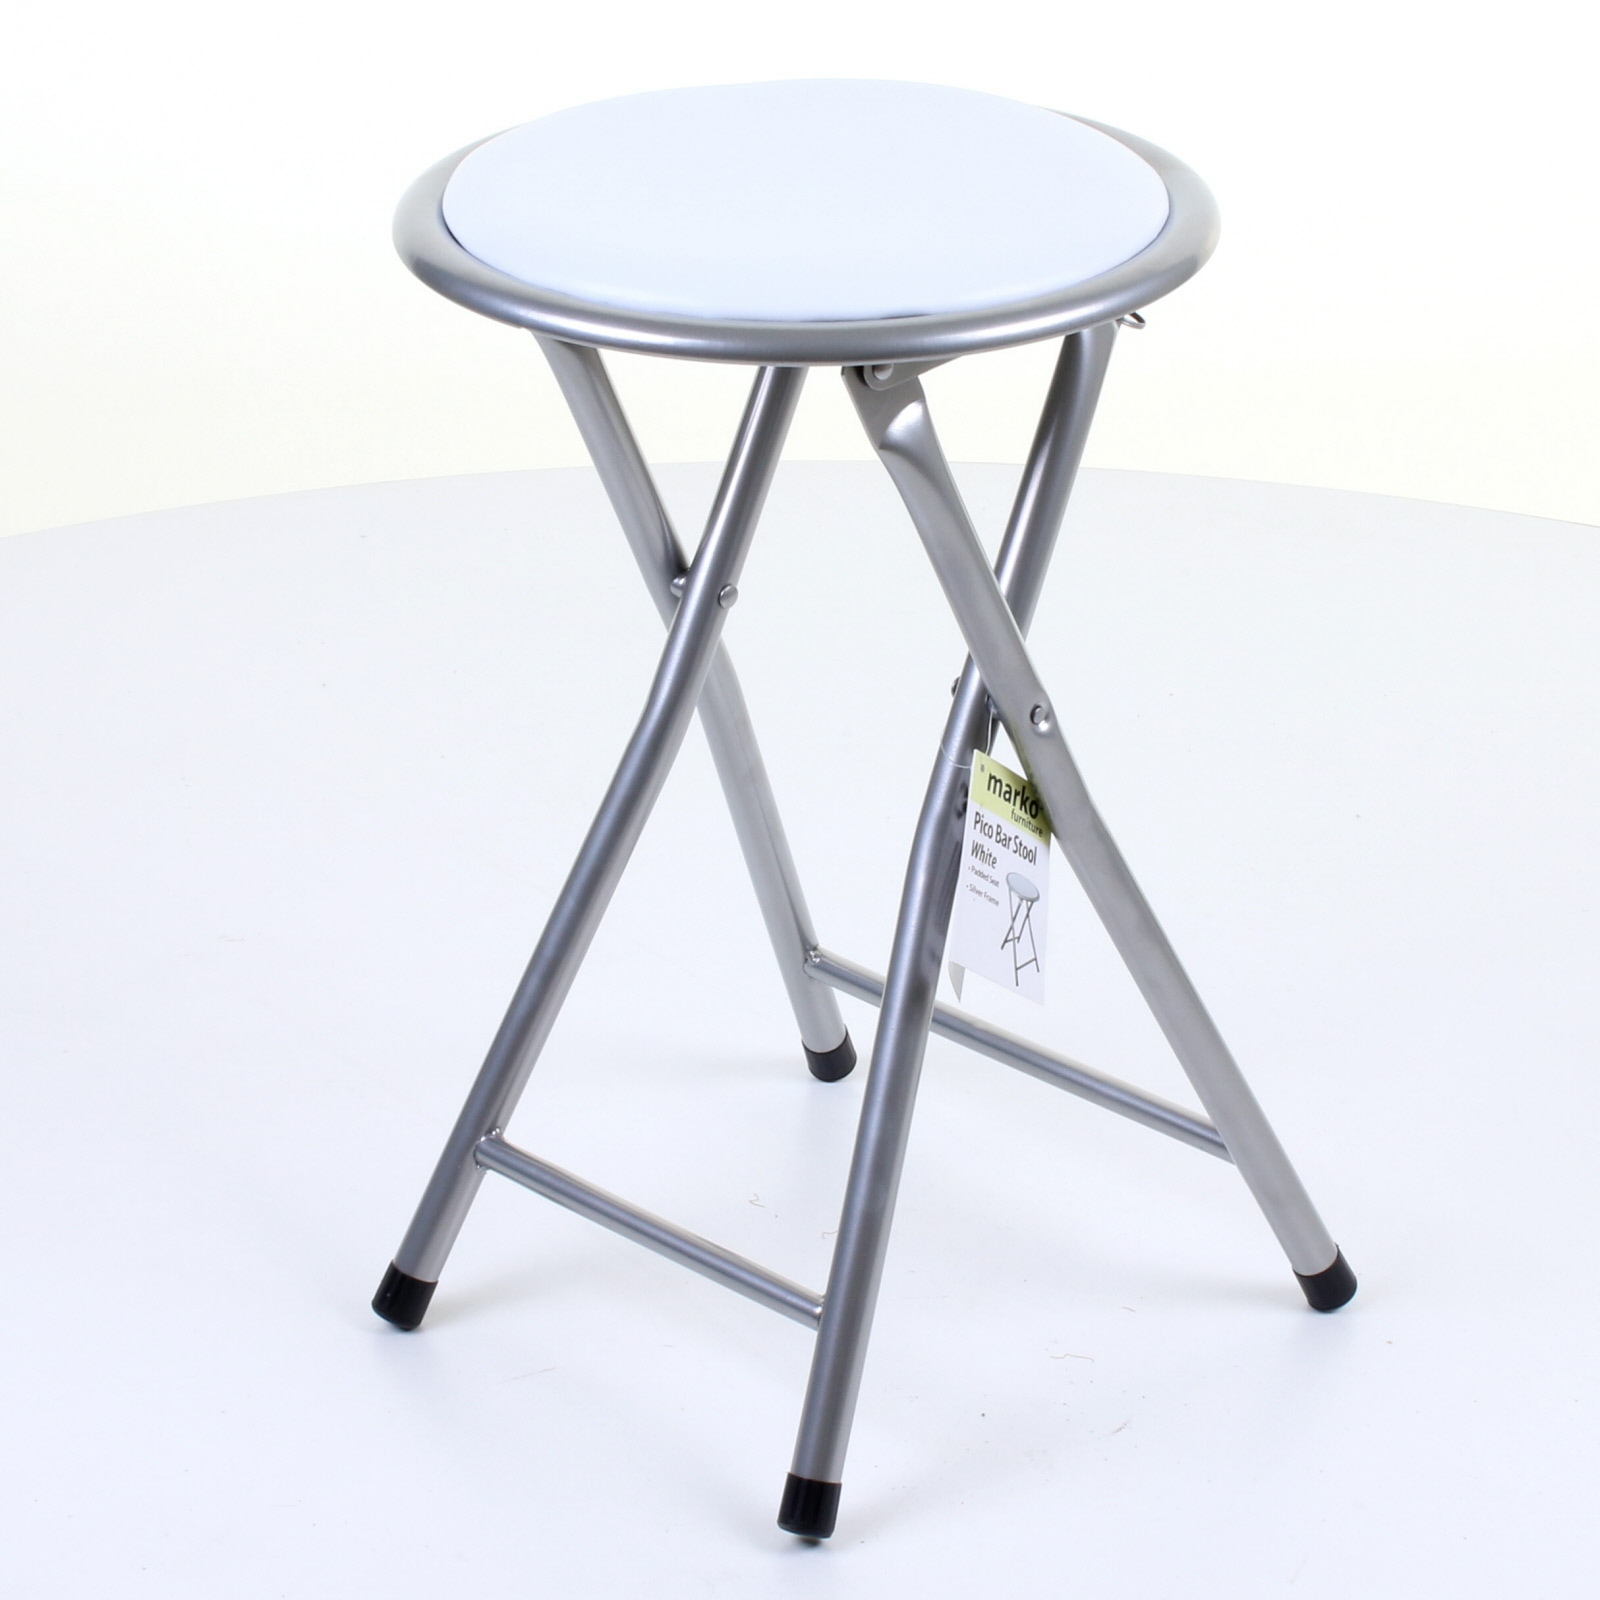 Padded Stool Folding Stool Round Breakfast Chair Seating Parties Office